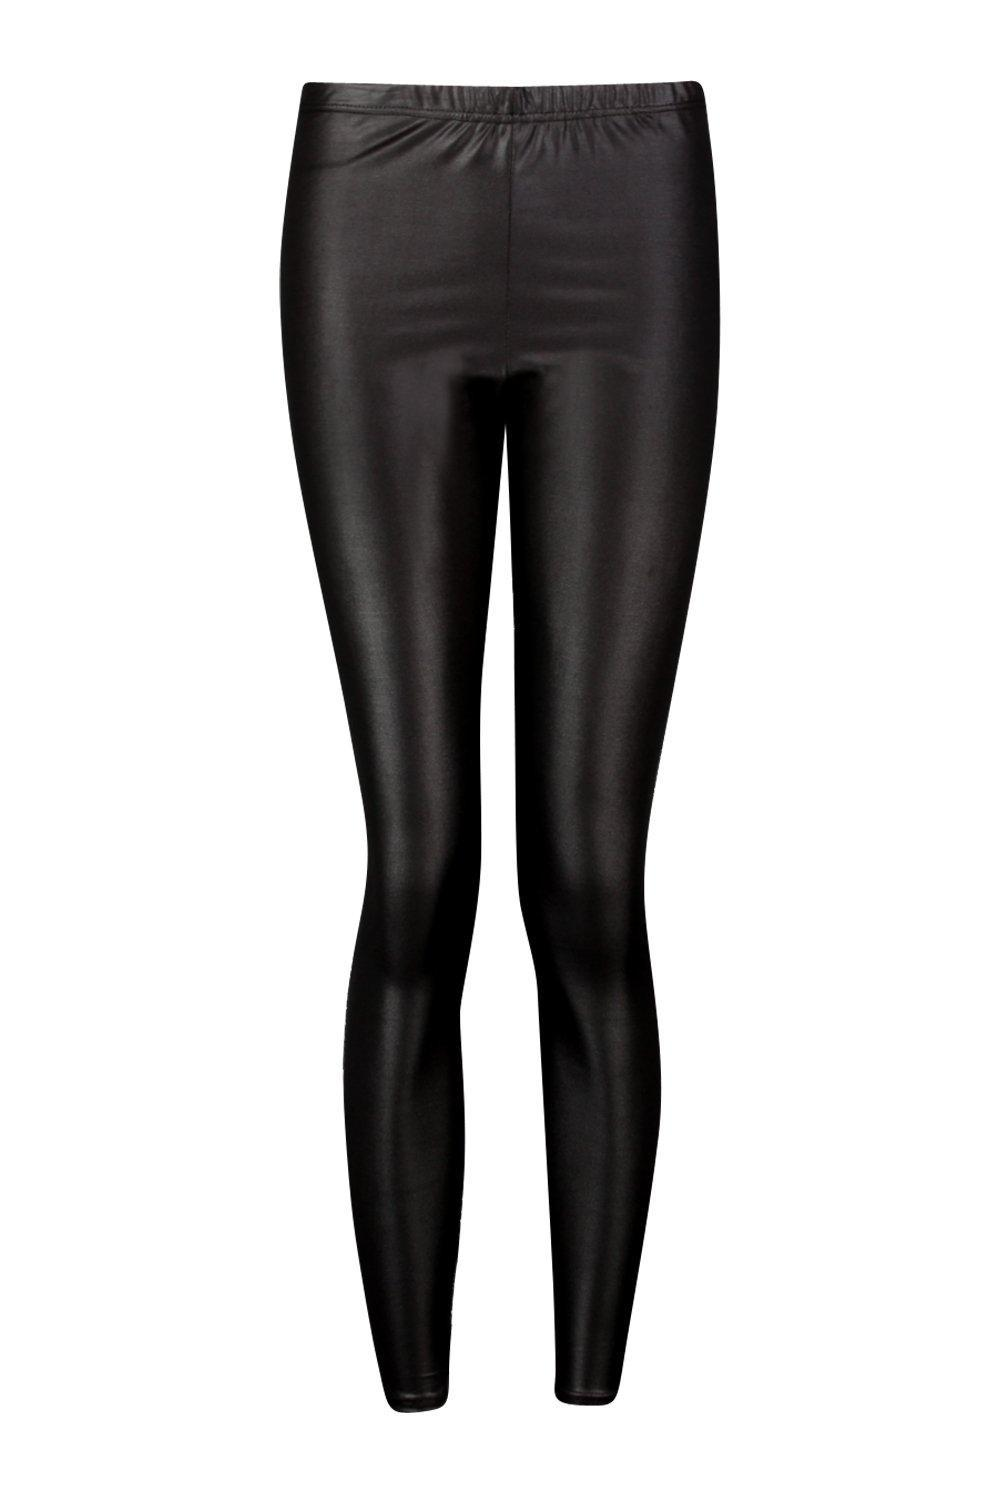 dbd85c0a8391 Boohoo - Black Wet Look Leggings - Lyst. View fullscreen